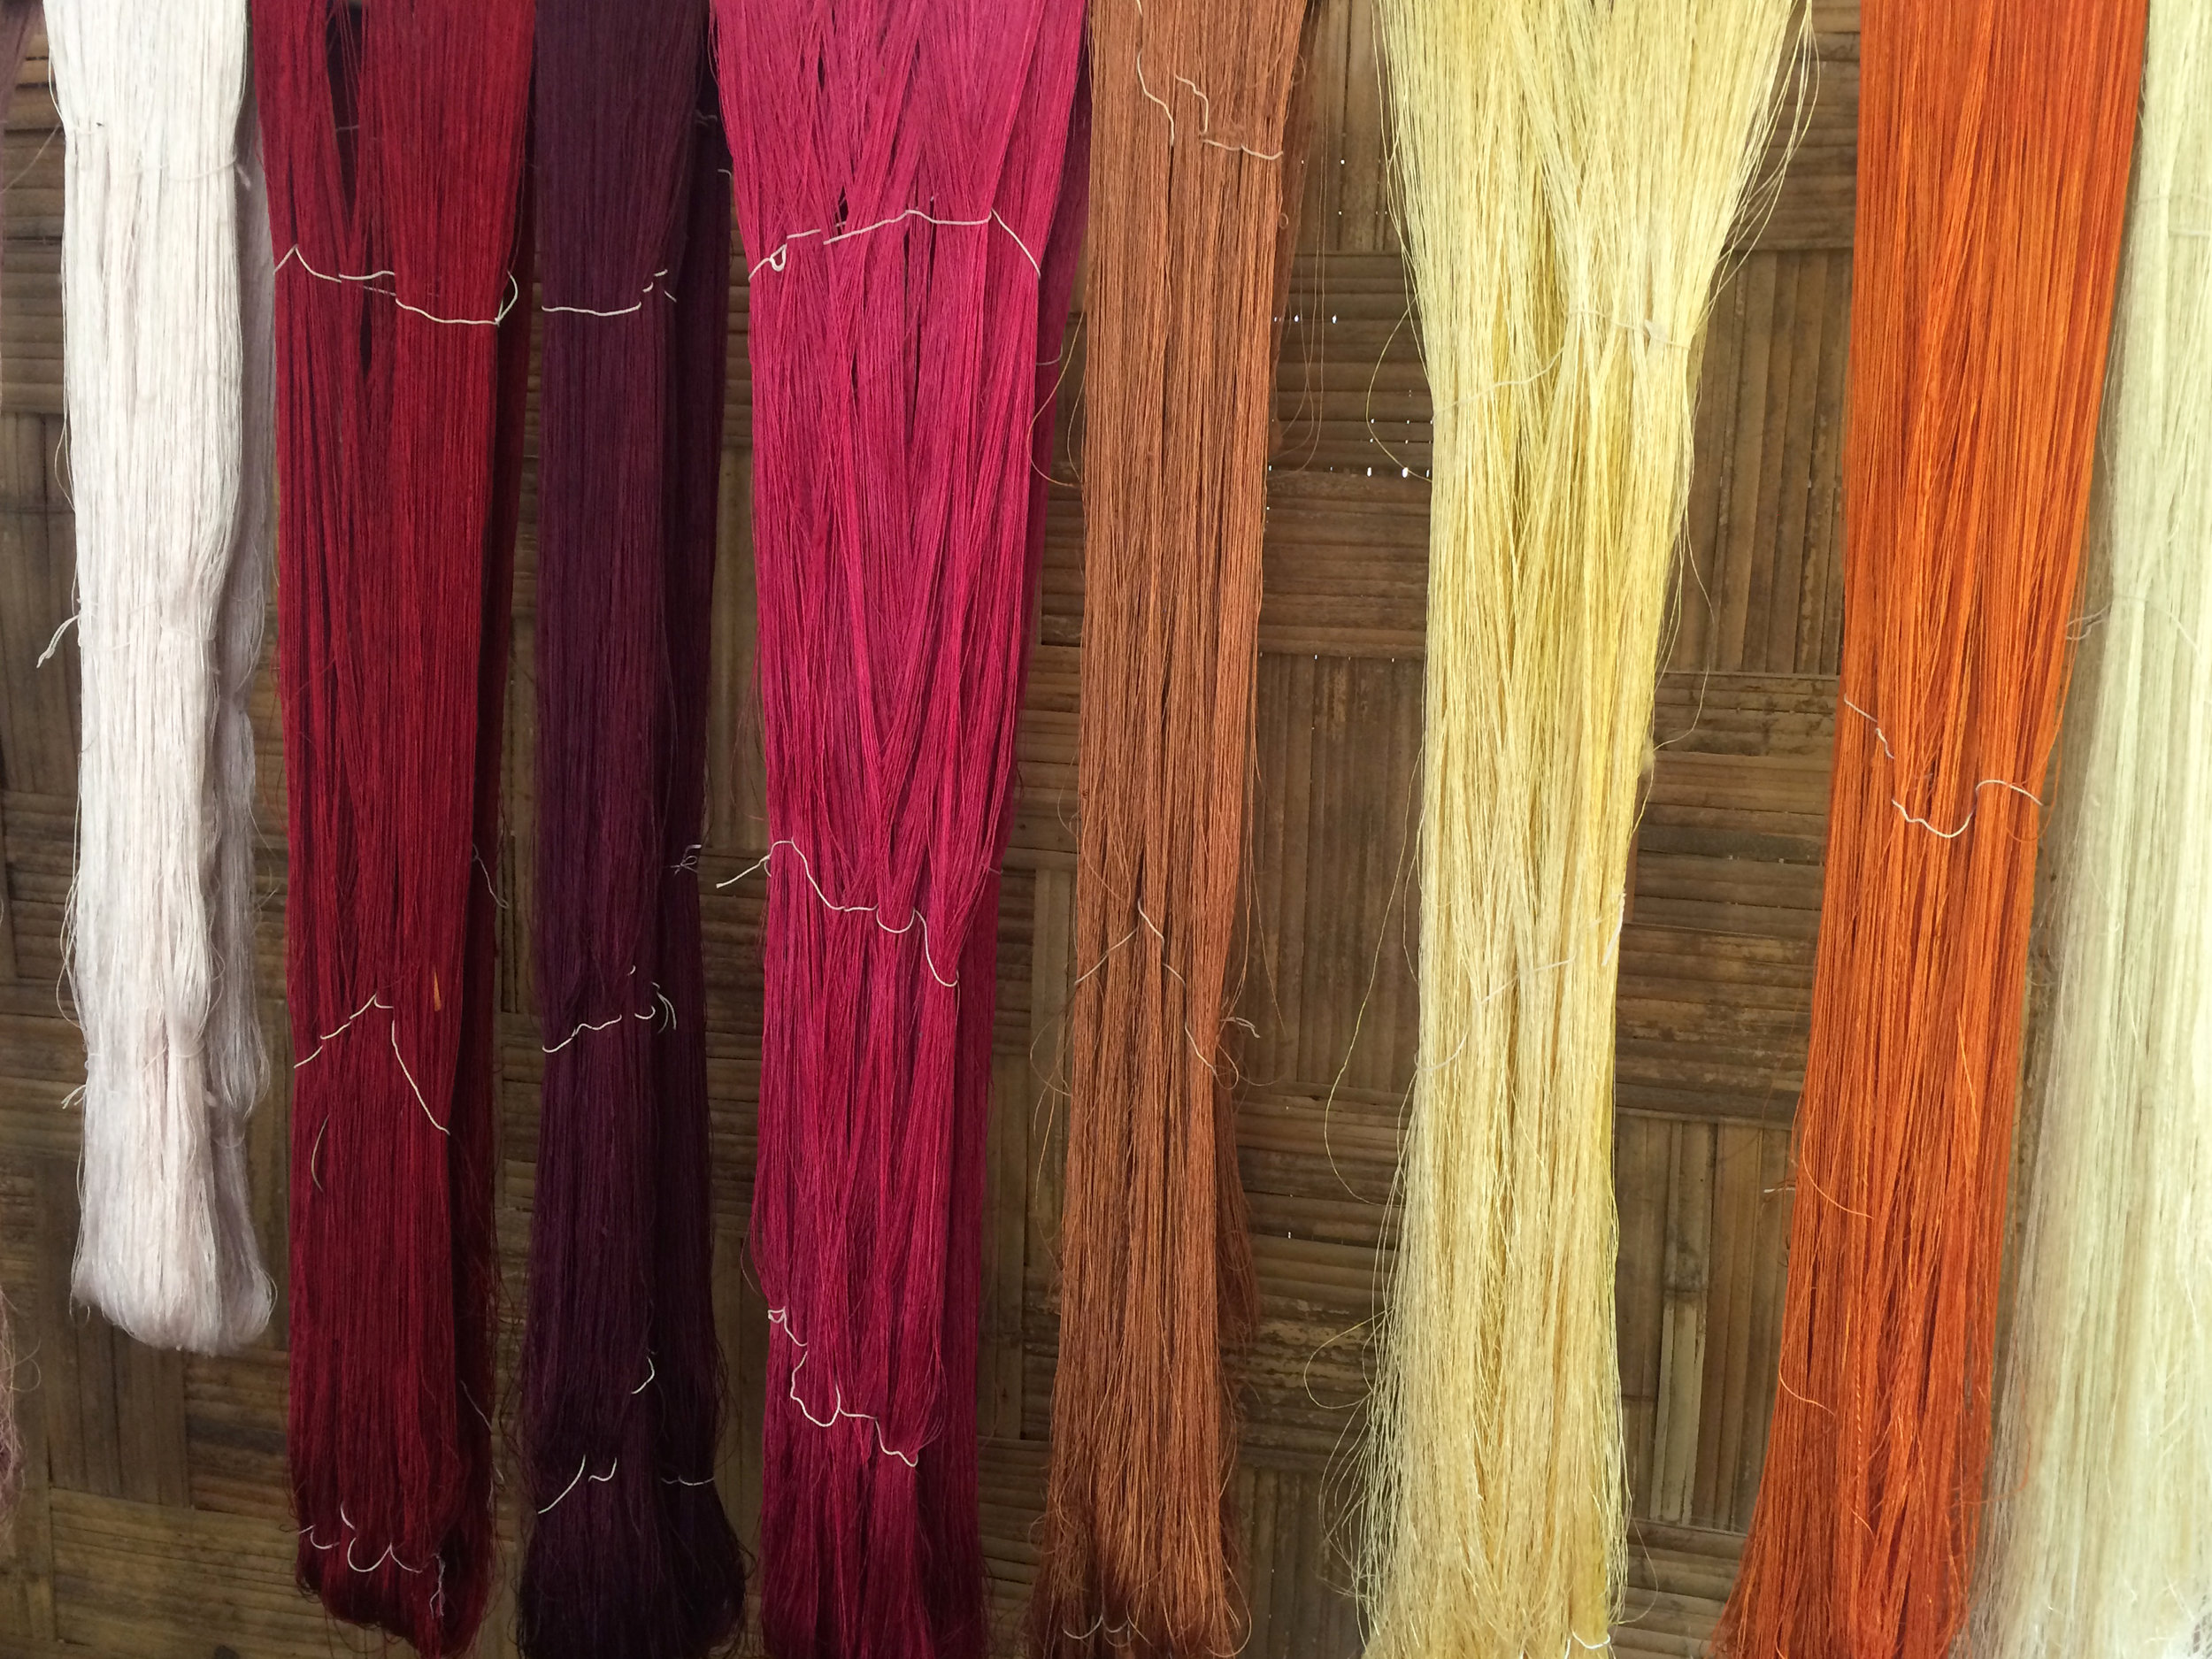 Silk threads dyed with natural dyes